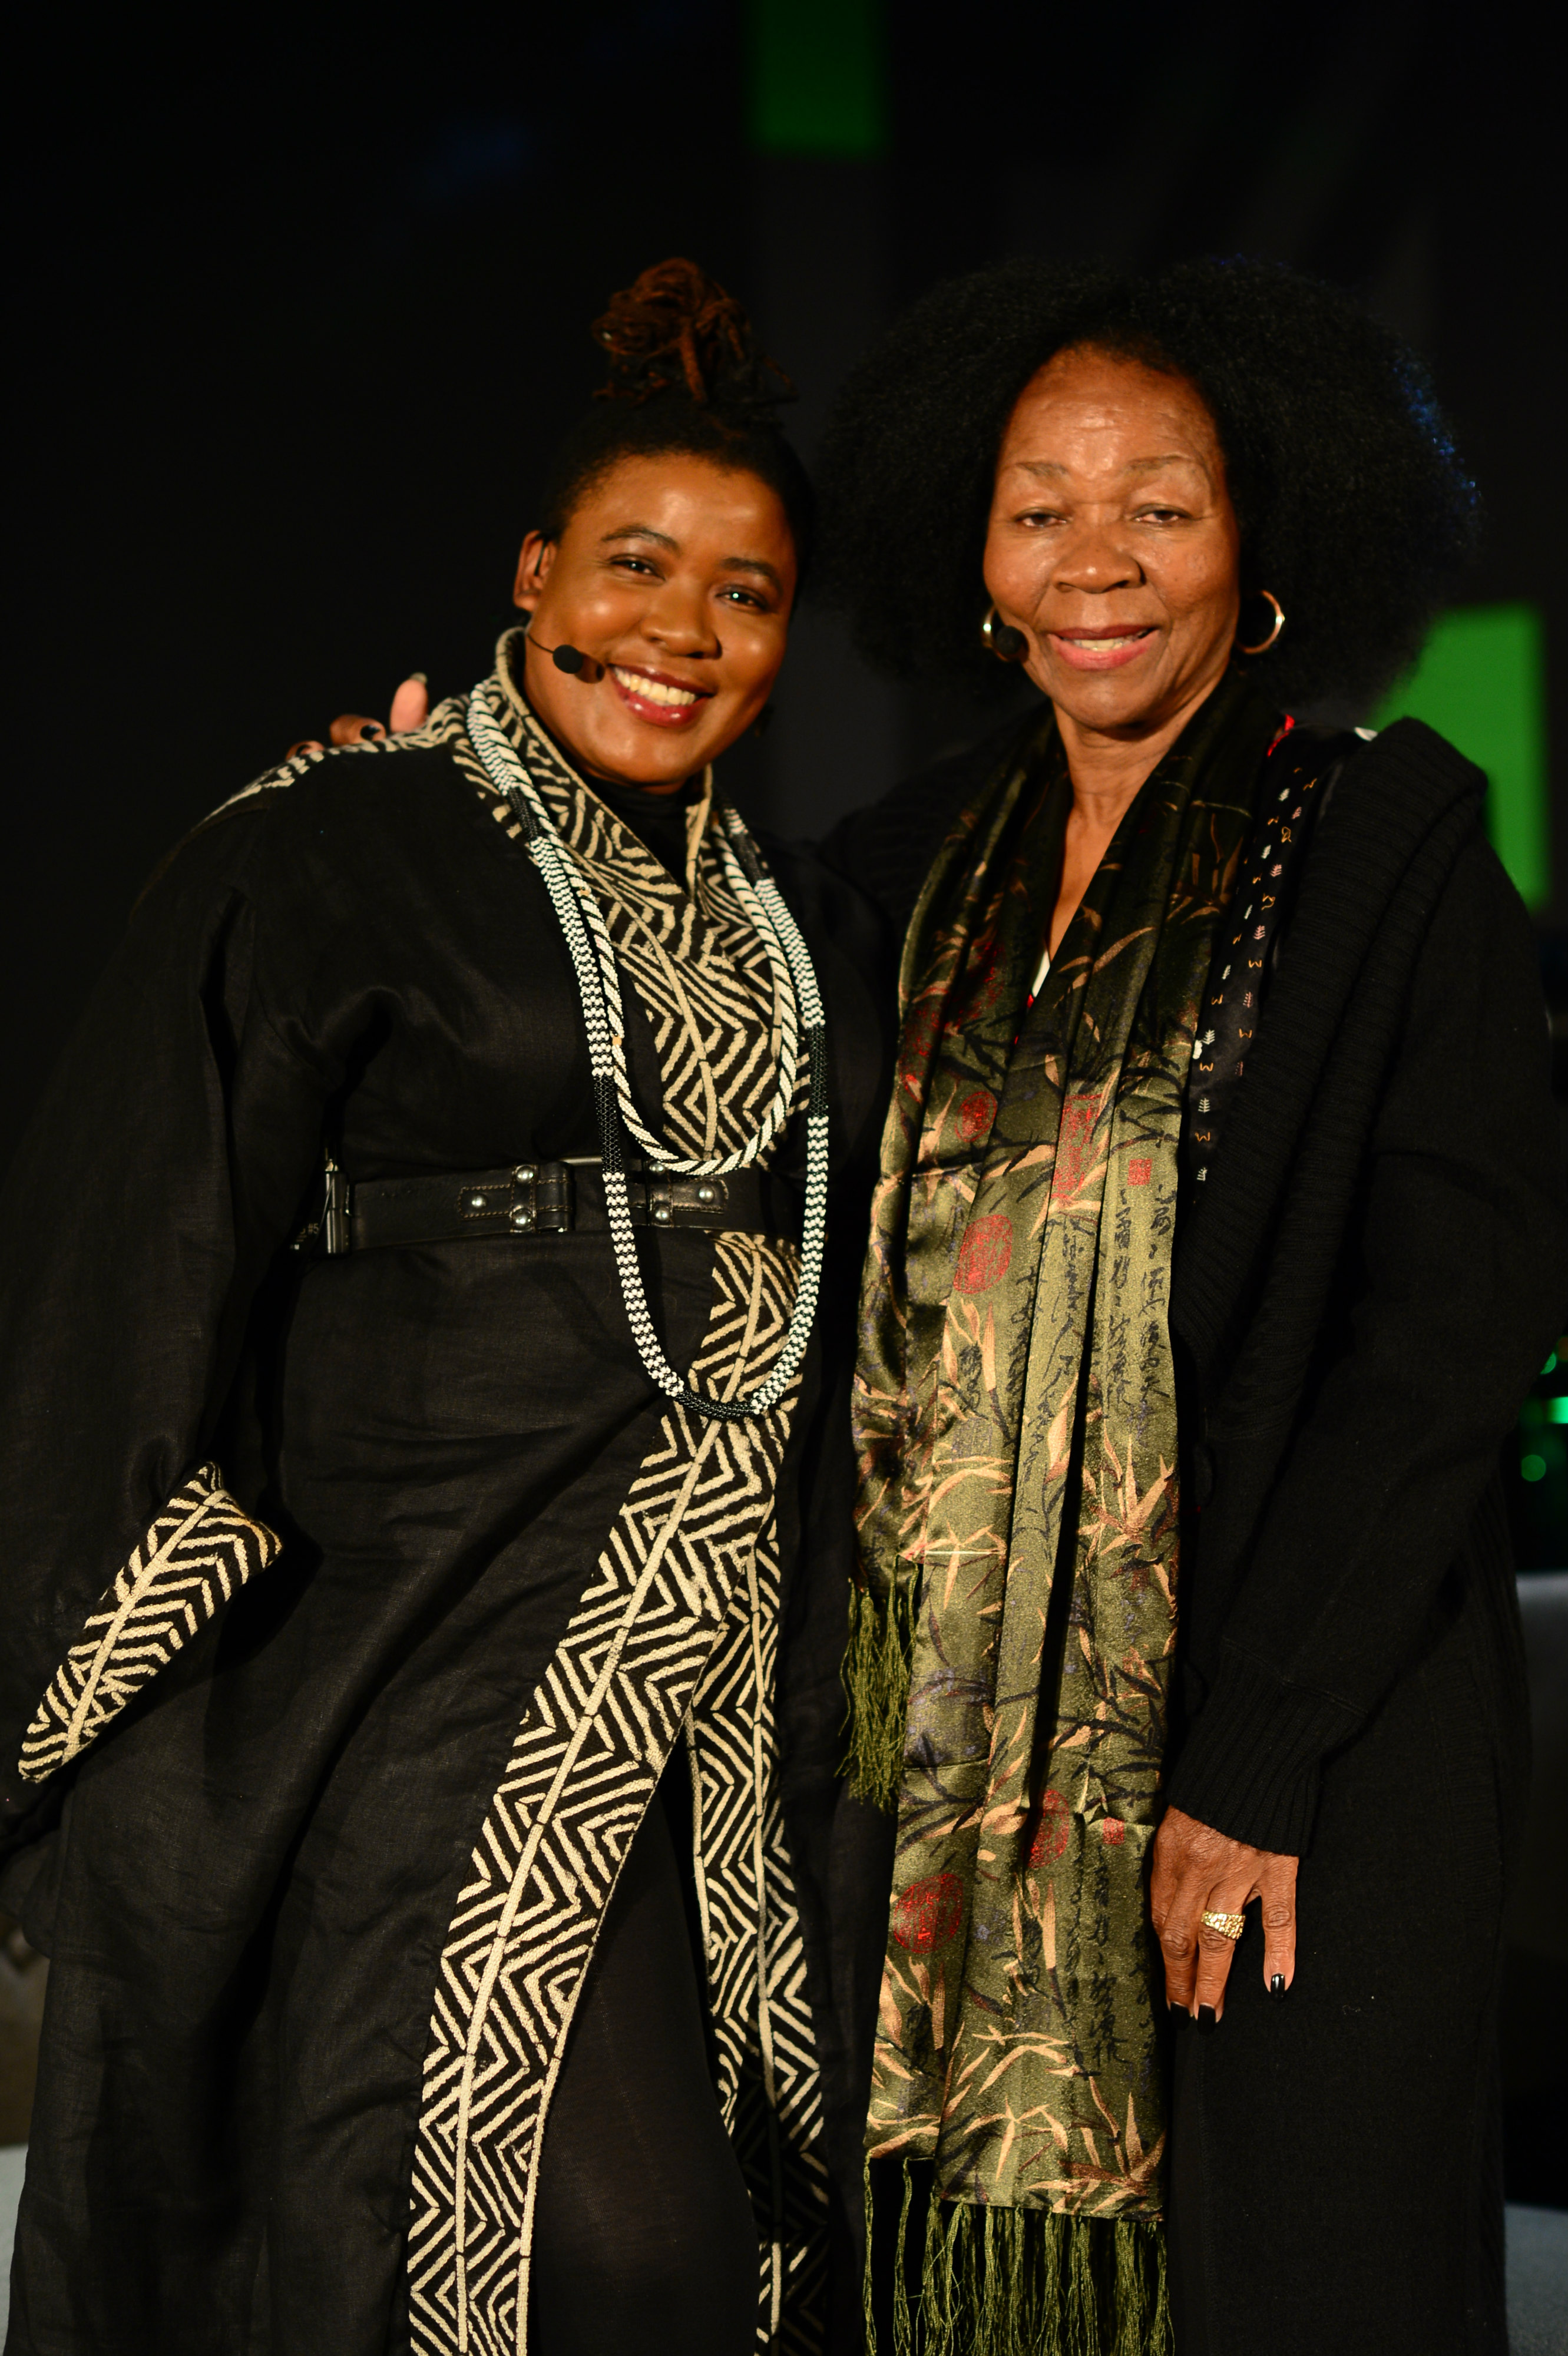 Thandiswa Mazwai and Letta Mbulu after the AMPD Icons conversation